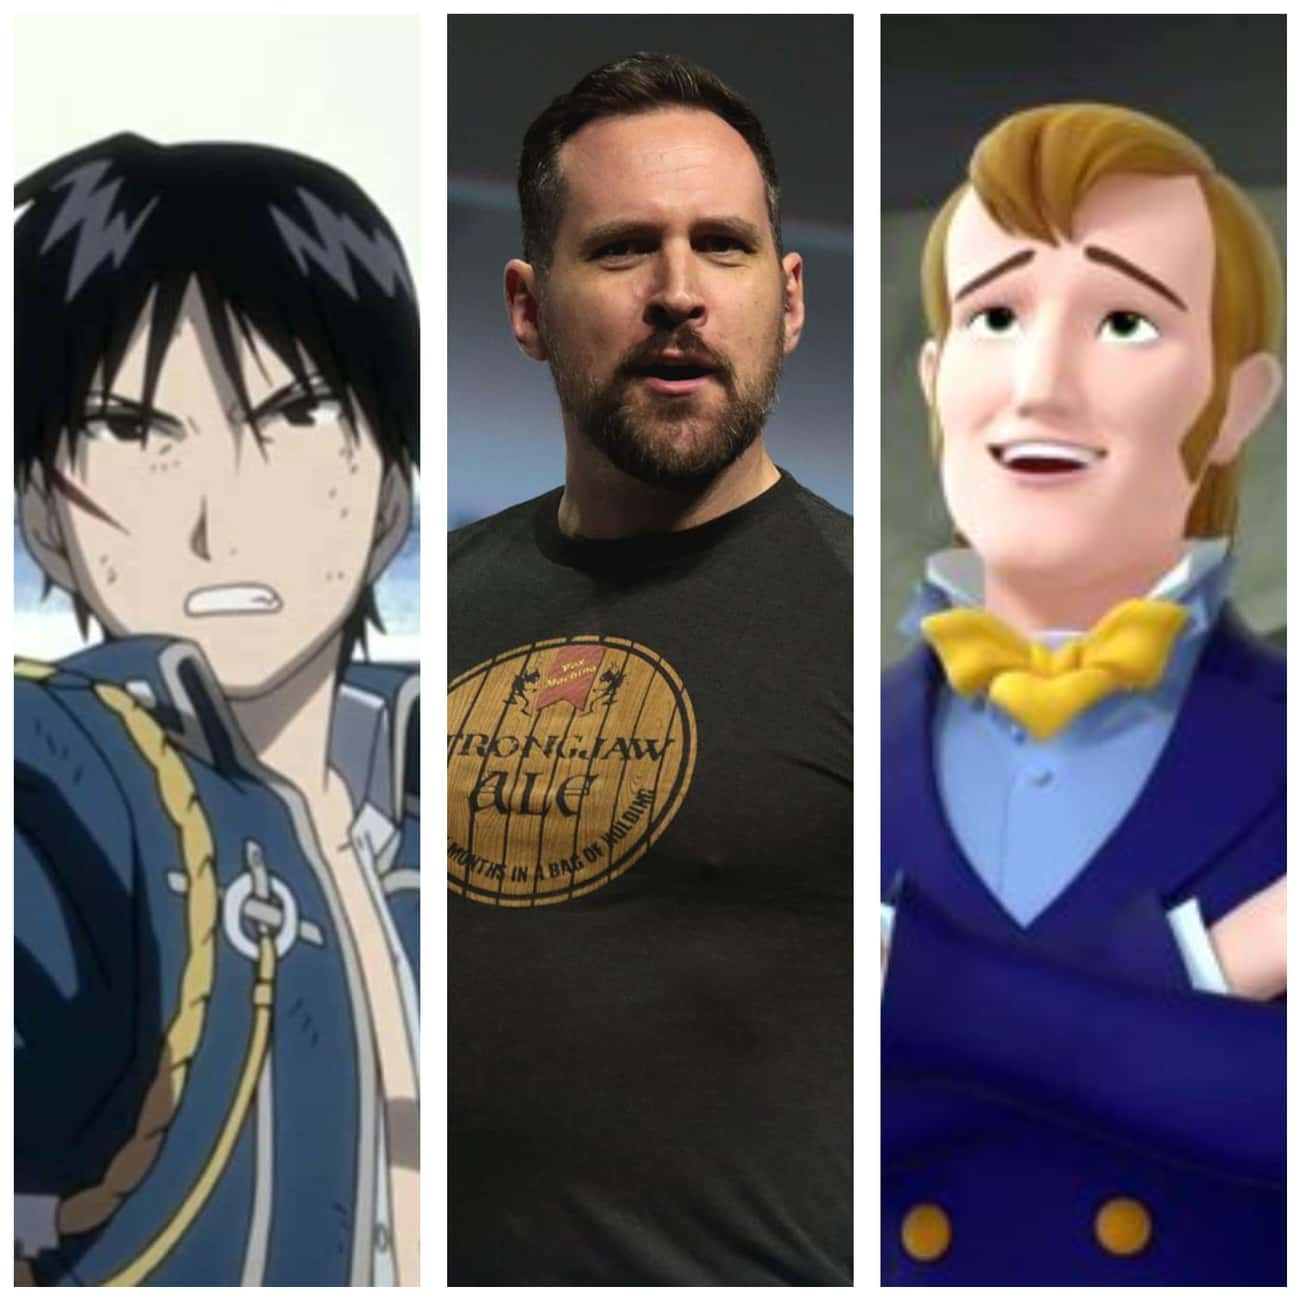 Travis Willingham From 'Fullme is listed (or ranked) 3 on the list 15 Times Anime Voice Actors Appeared In Western Cartoons